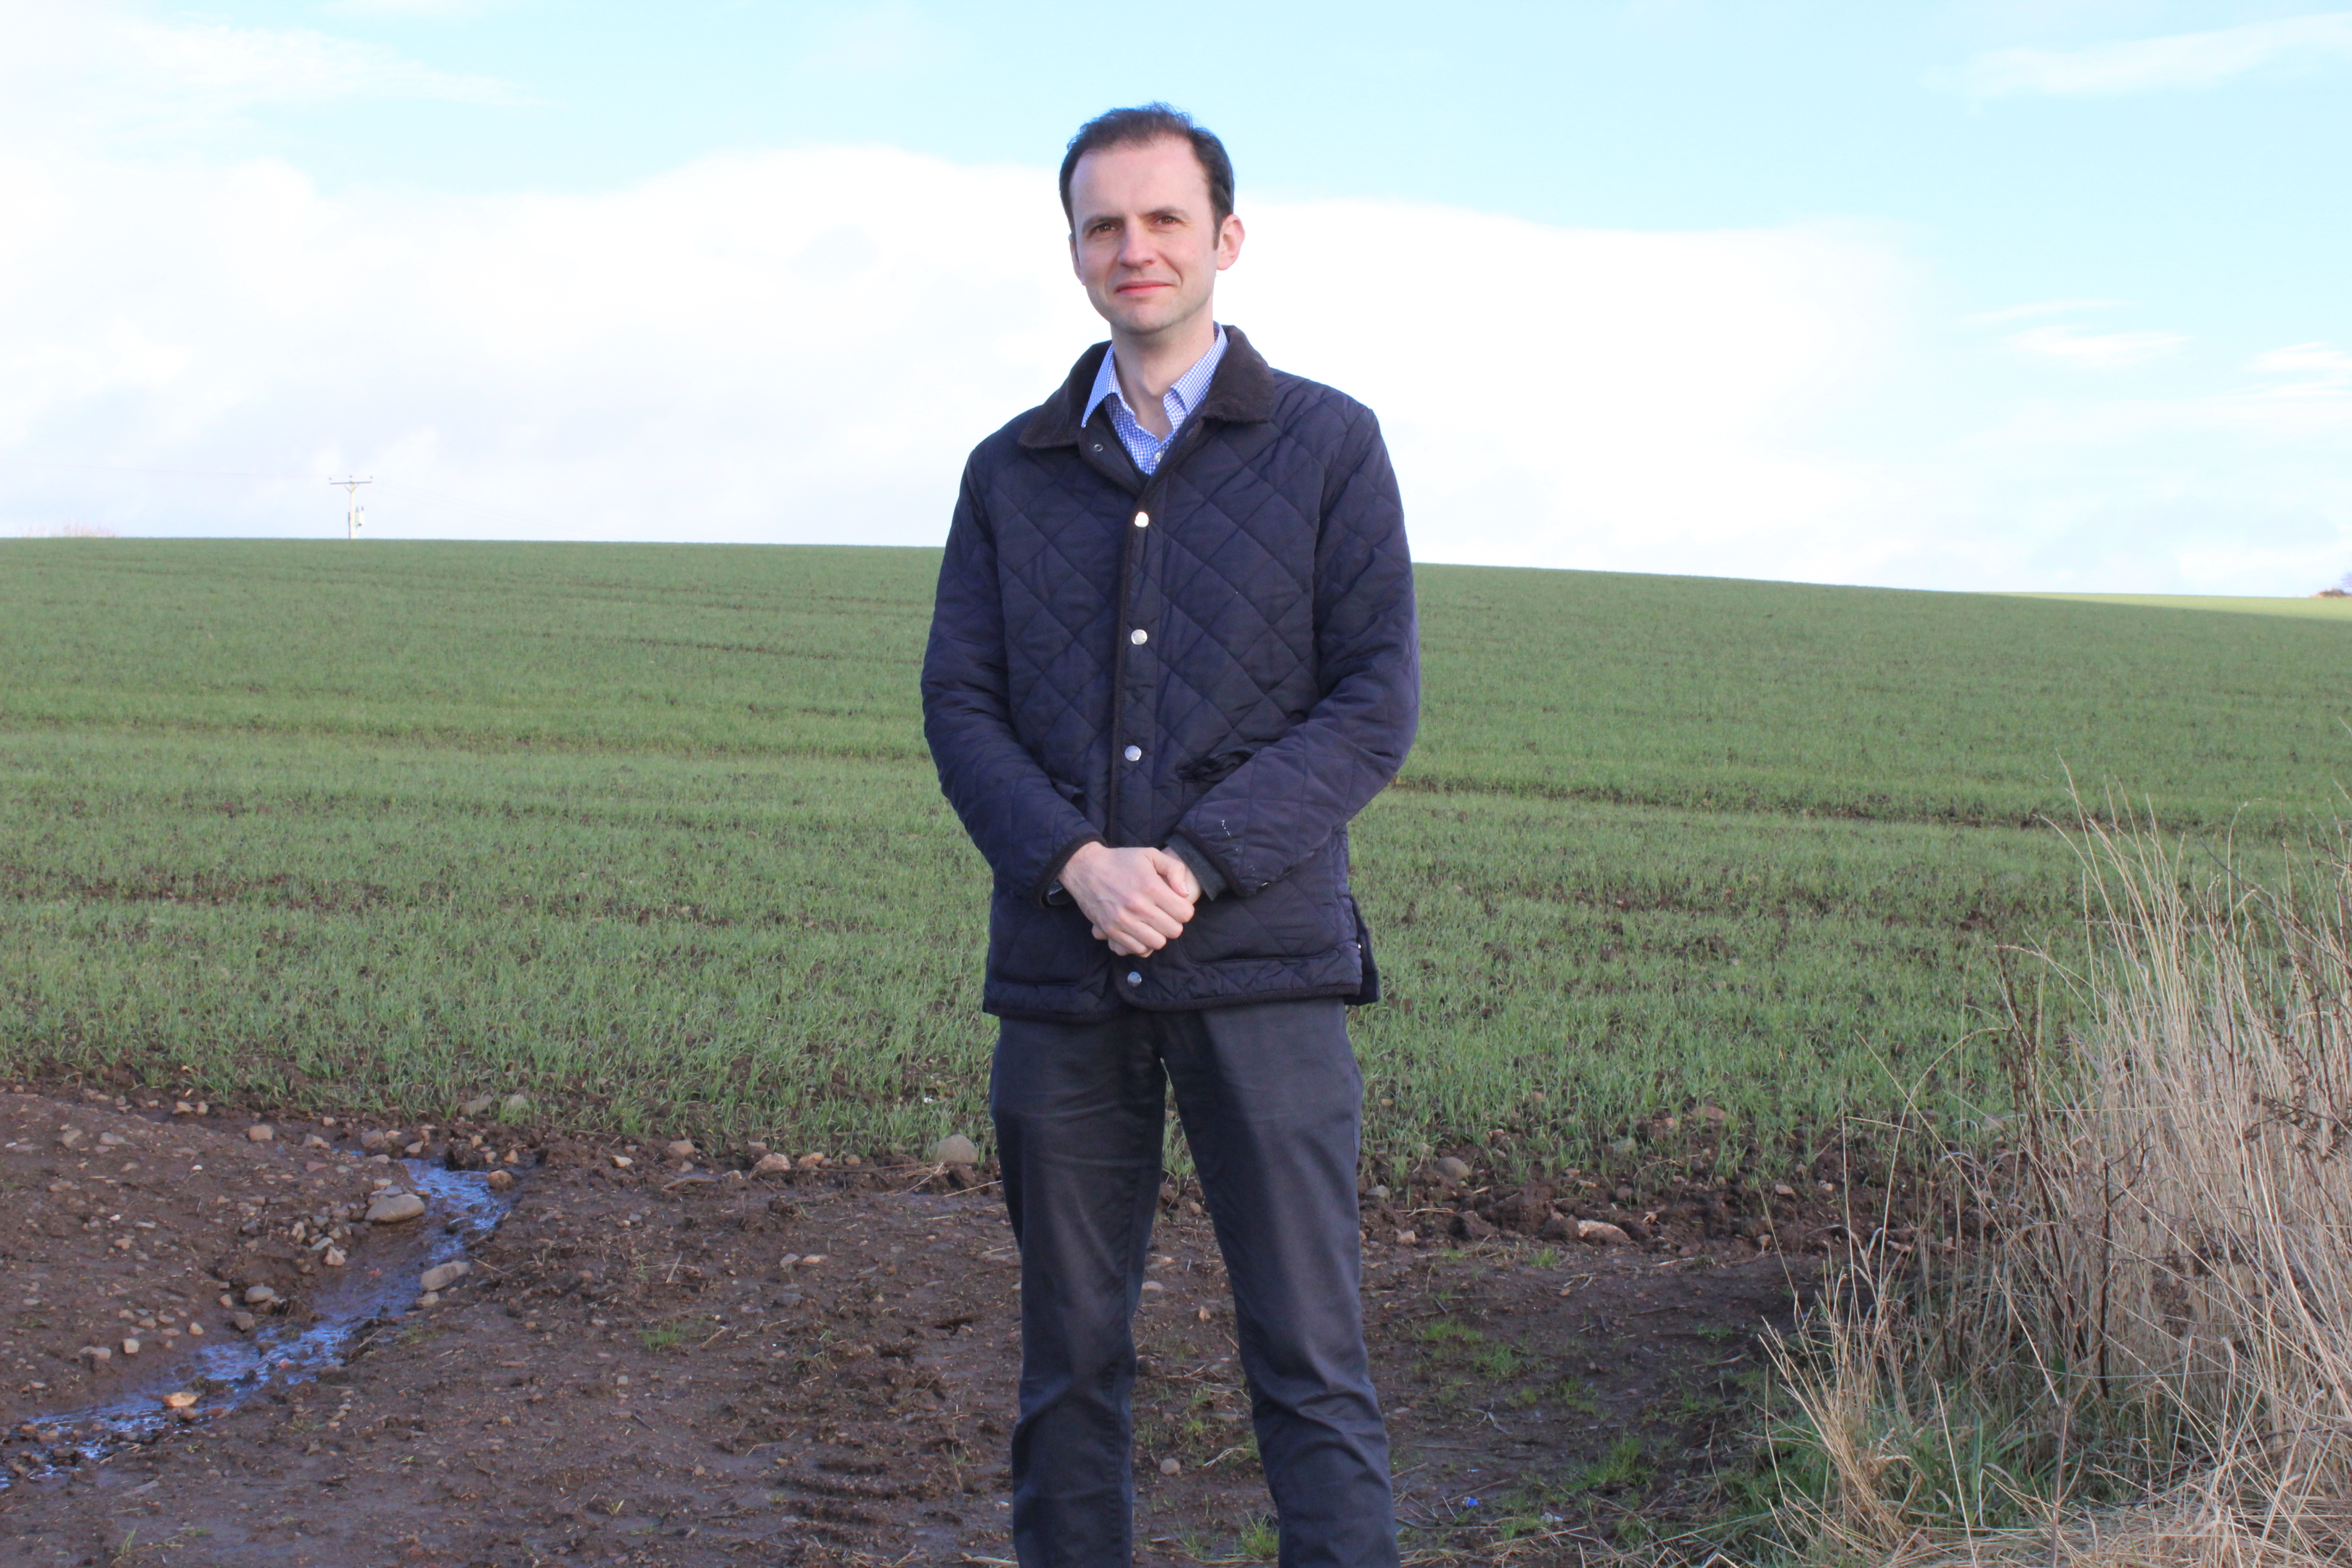 Stephen Gethins MP has raised concerns about the impact development would have on the town.